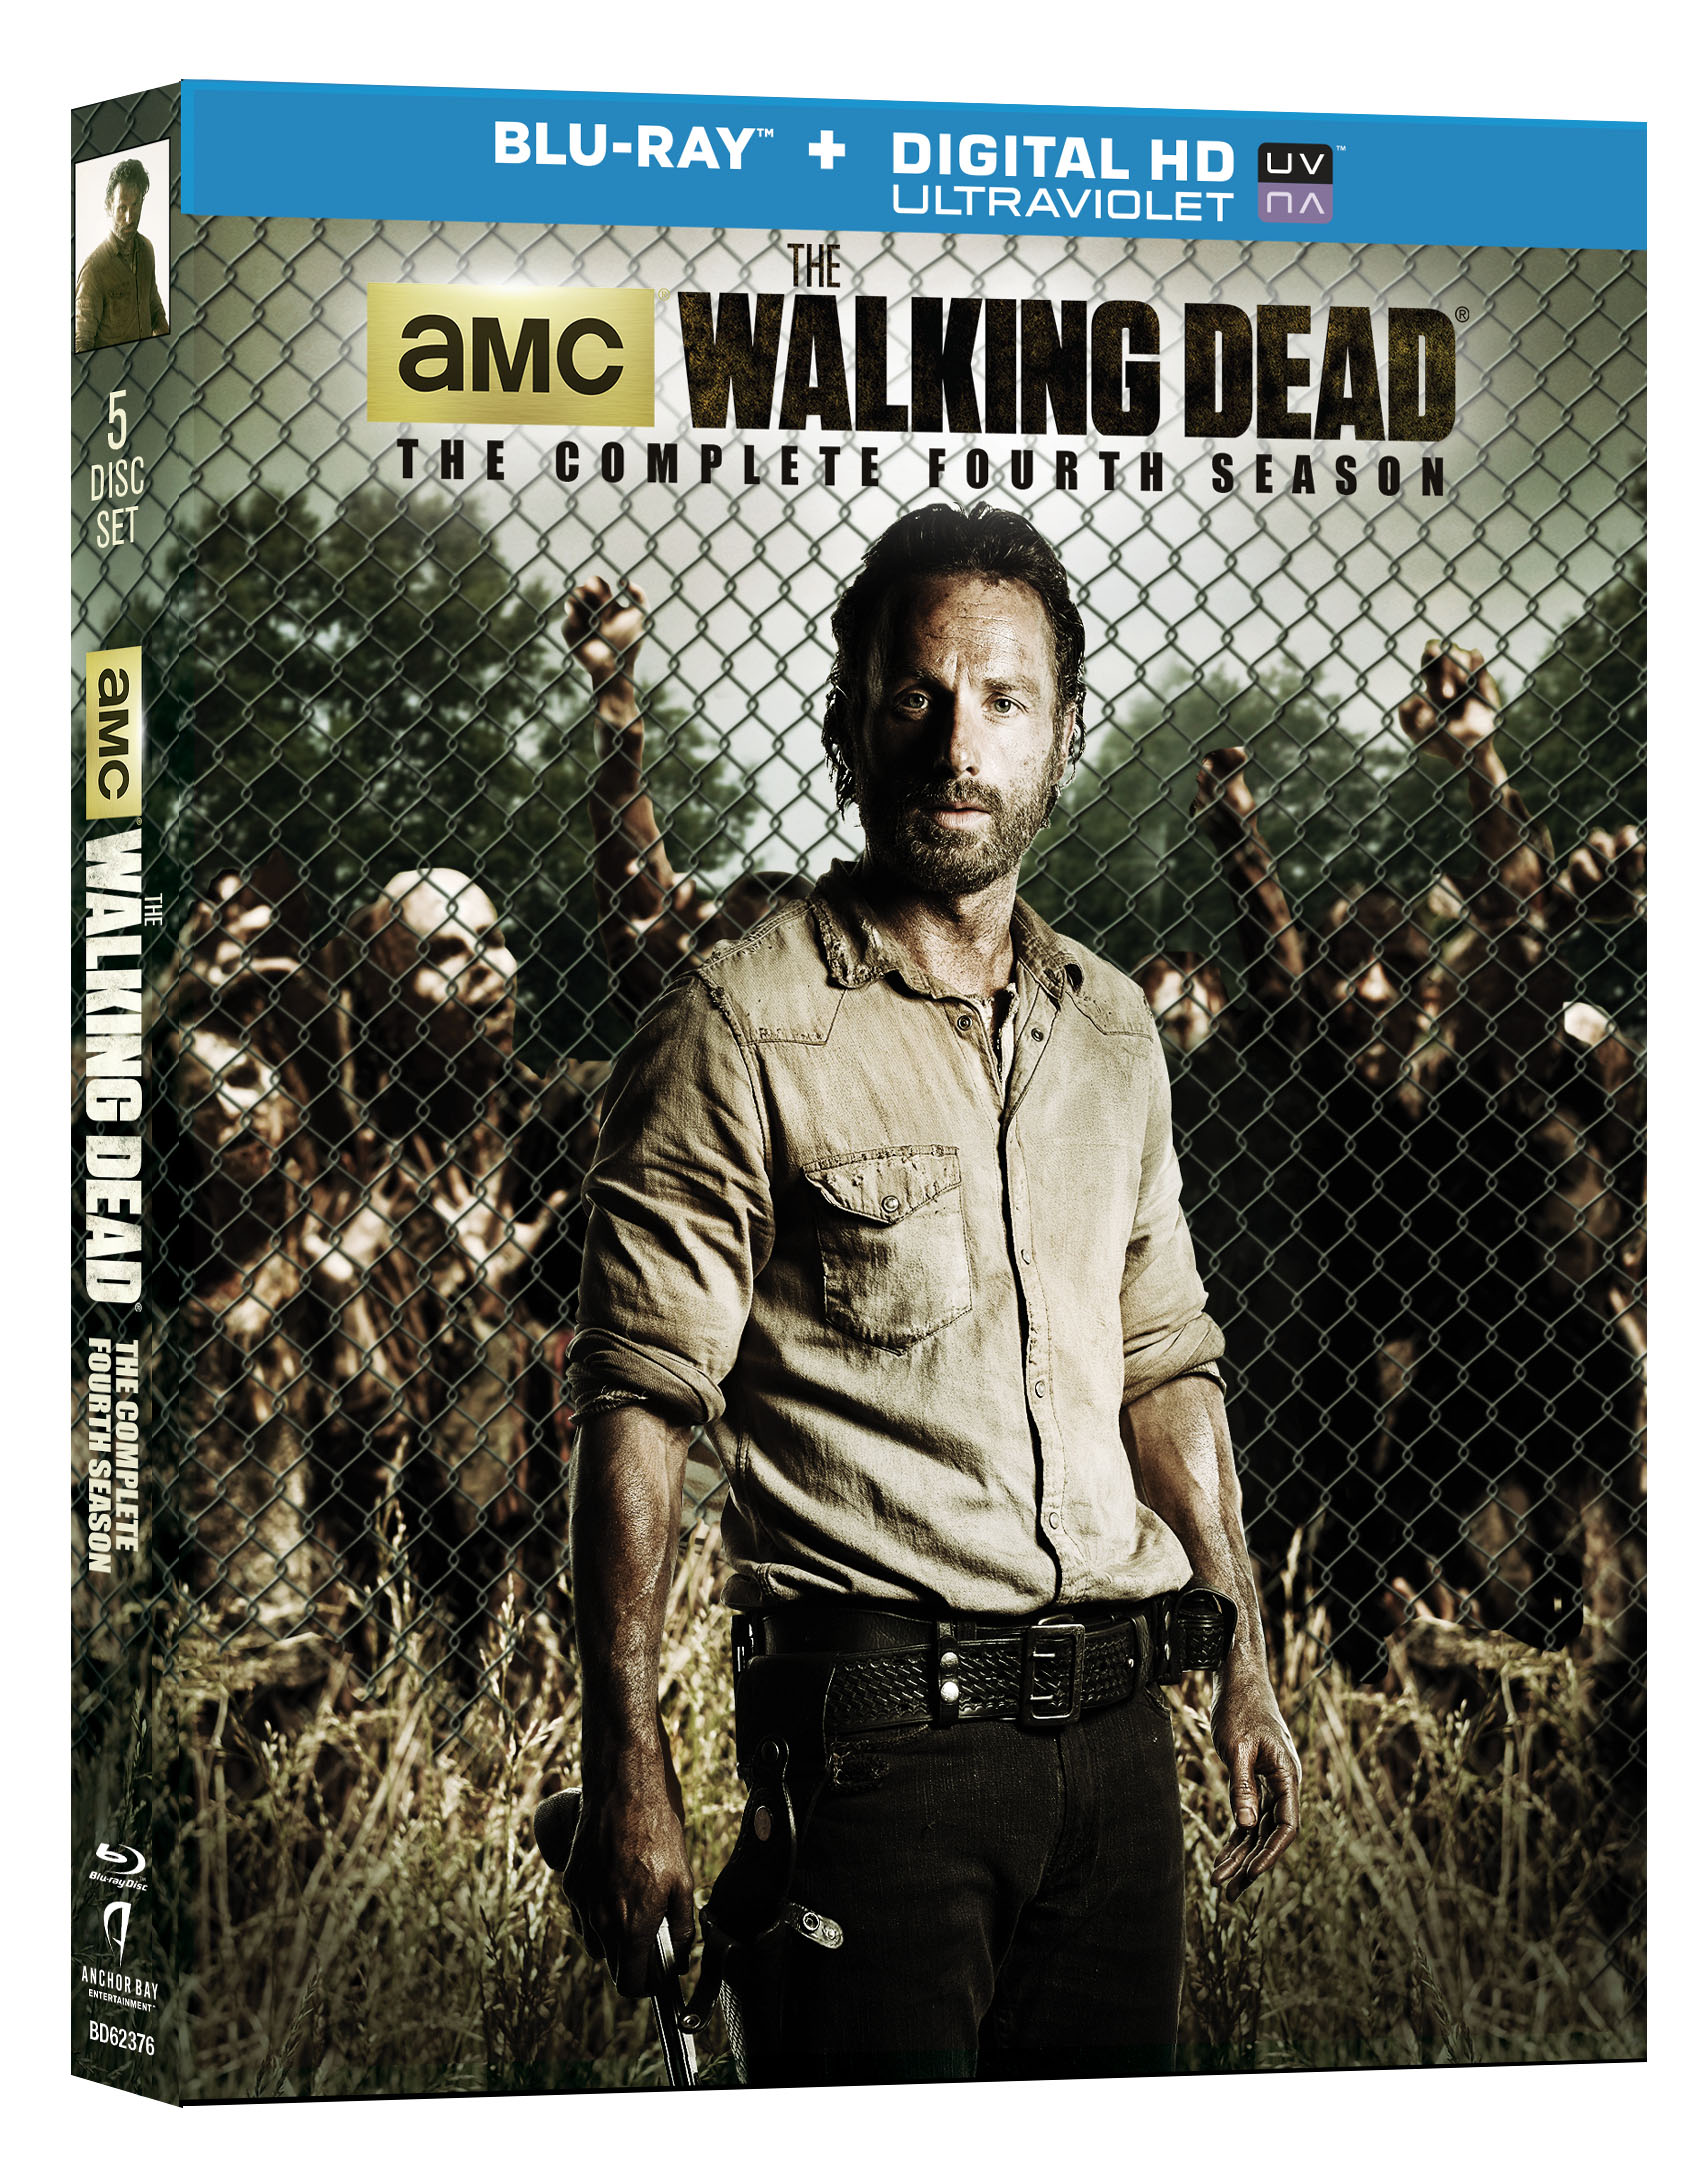 BD62376ORN walking dead s4uv 3d BEST BUY The Walking Dead: The Complete Fourth Season Coming to DVD and Blu ray August 26